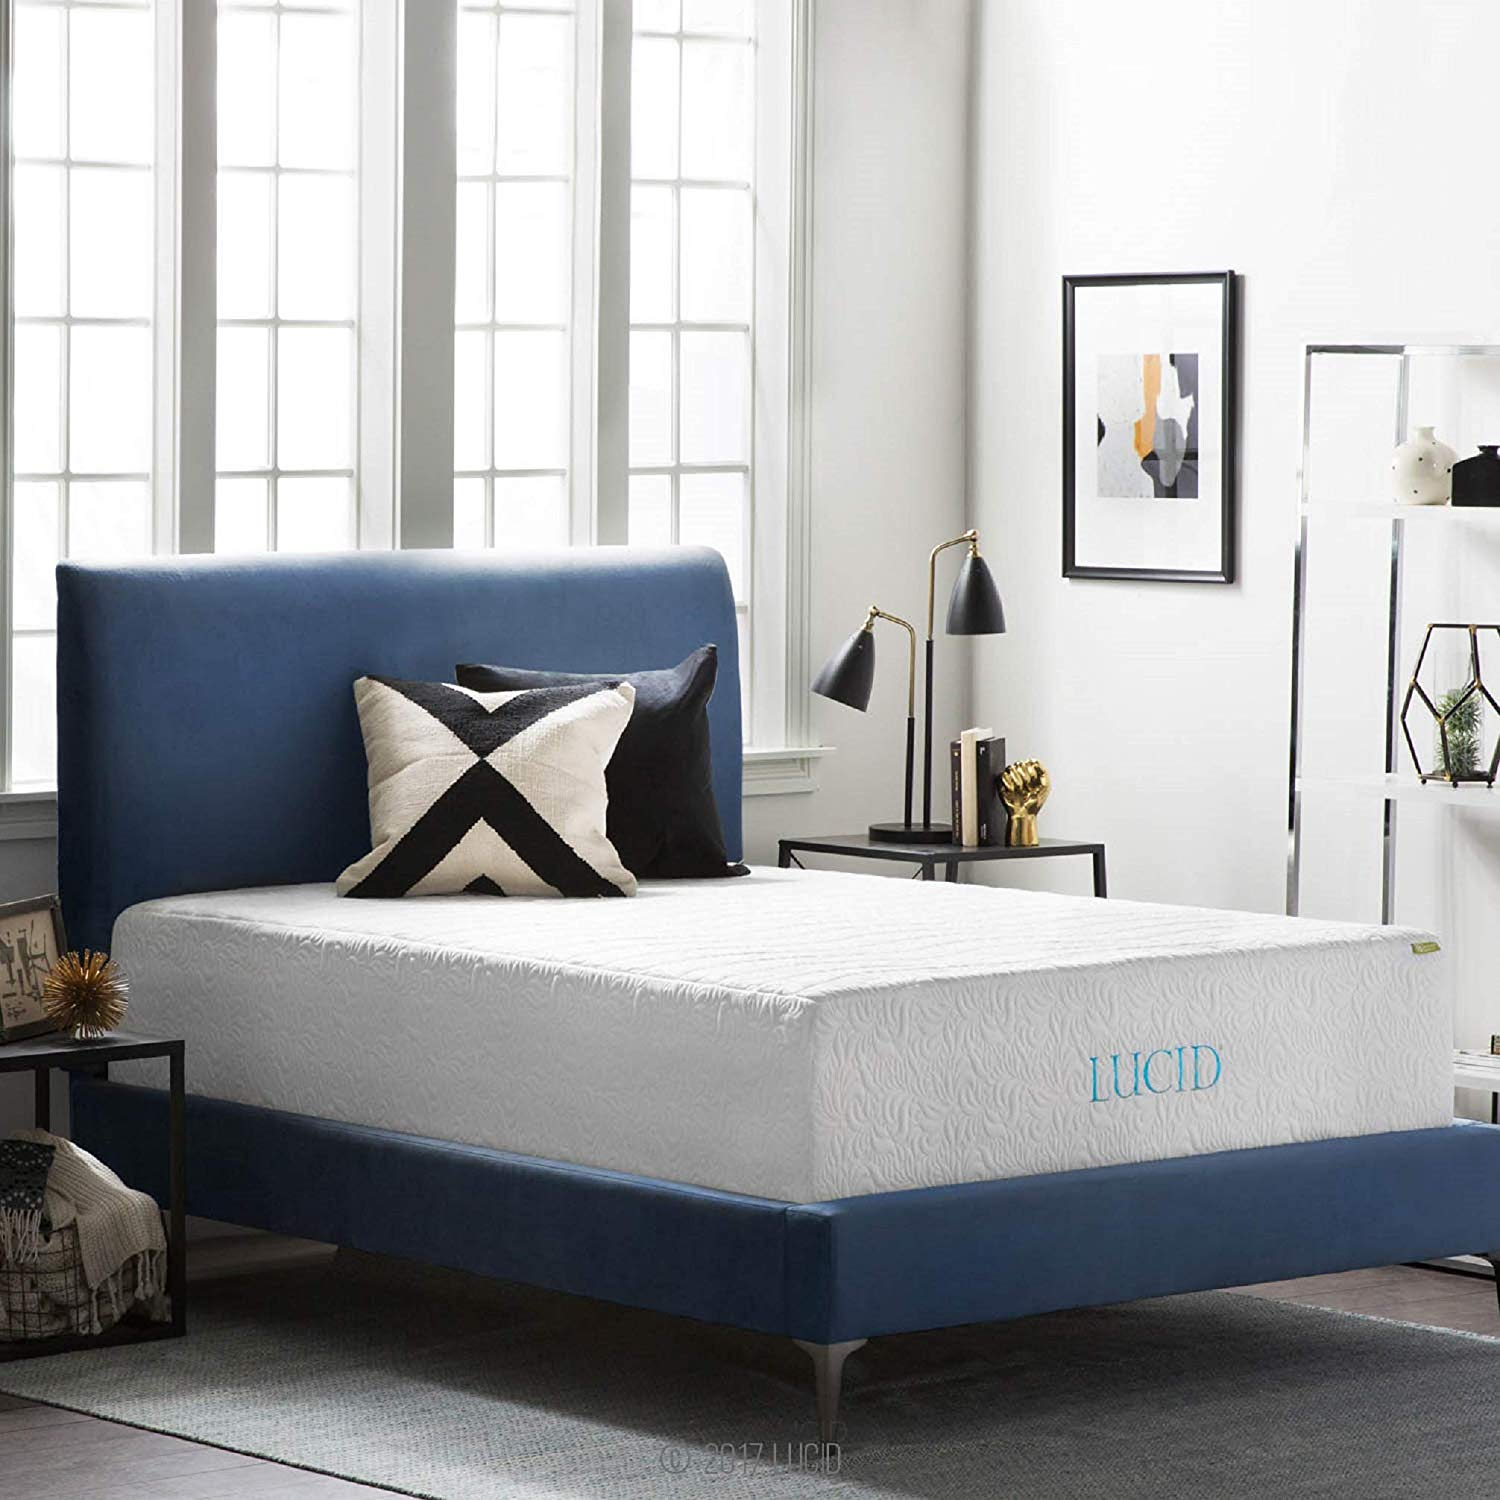 16 Inch Plush Gel Memory Foam and Latex Lucid Mattress Reviews by www.snoremagazine.com